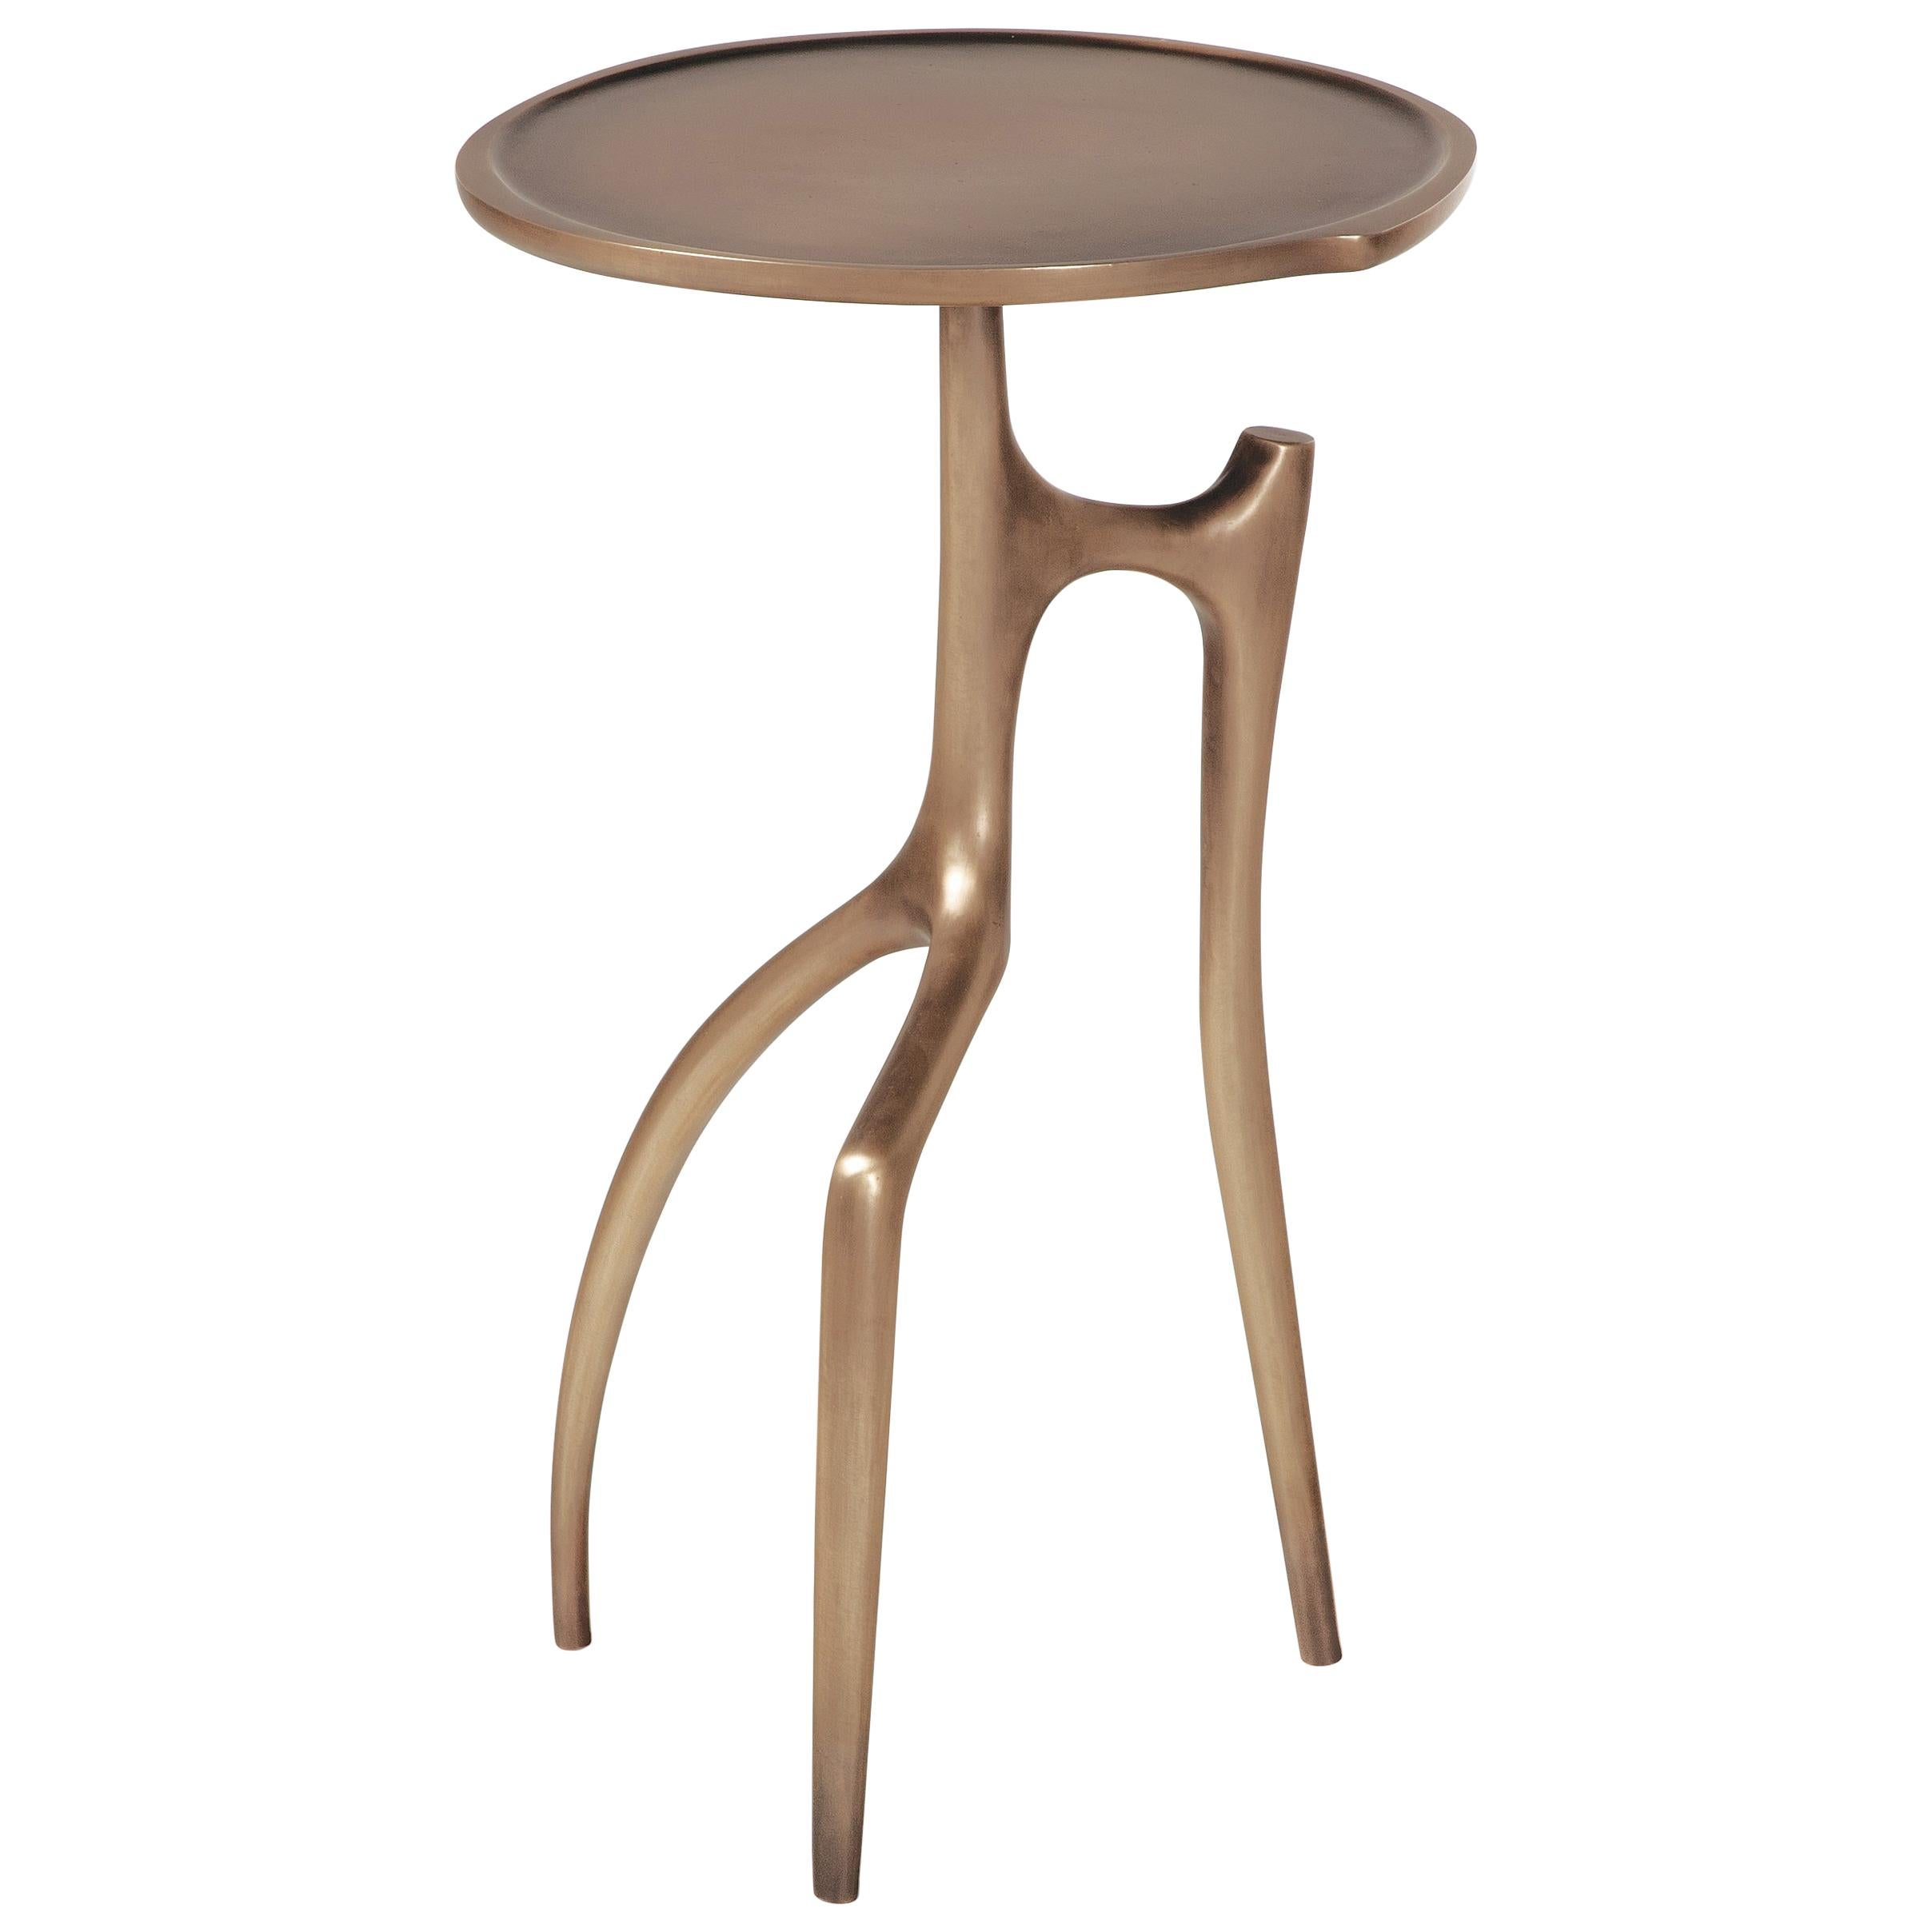 The Holly Hunt patinated-bronze Branche side table, named for its arboreal legs